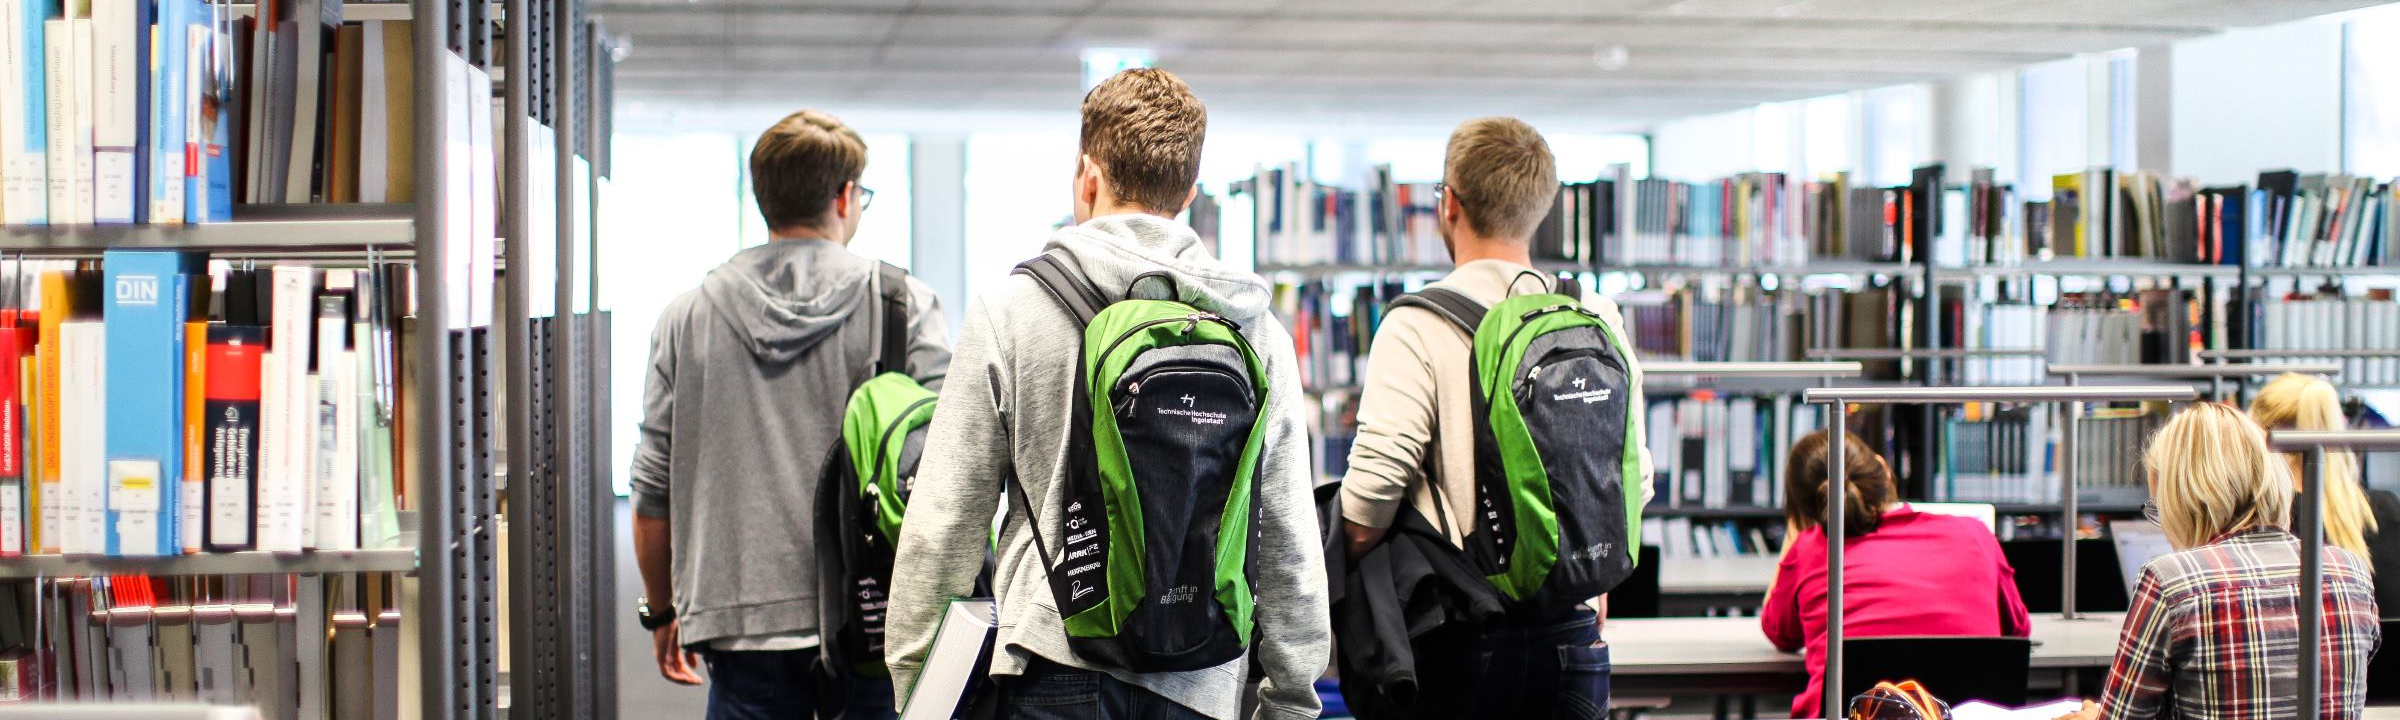 3 students with THI-rucksack walk through the library